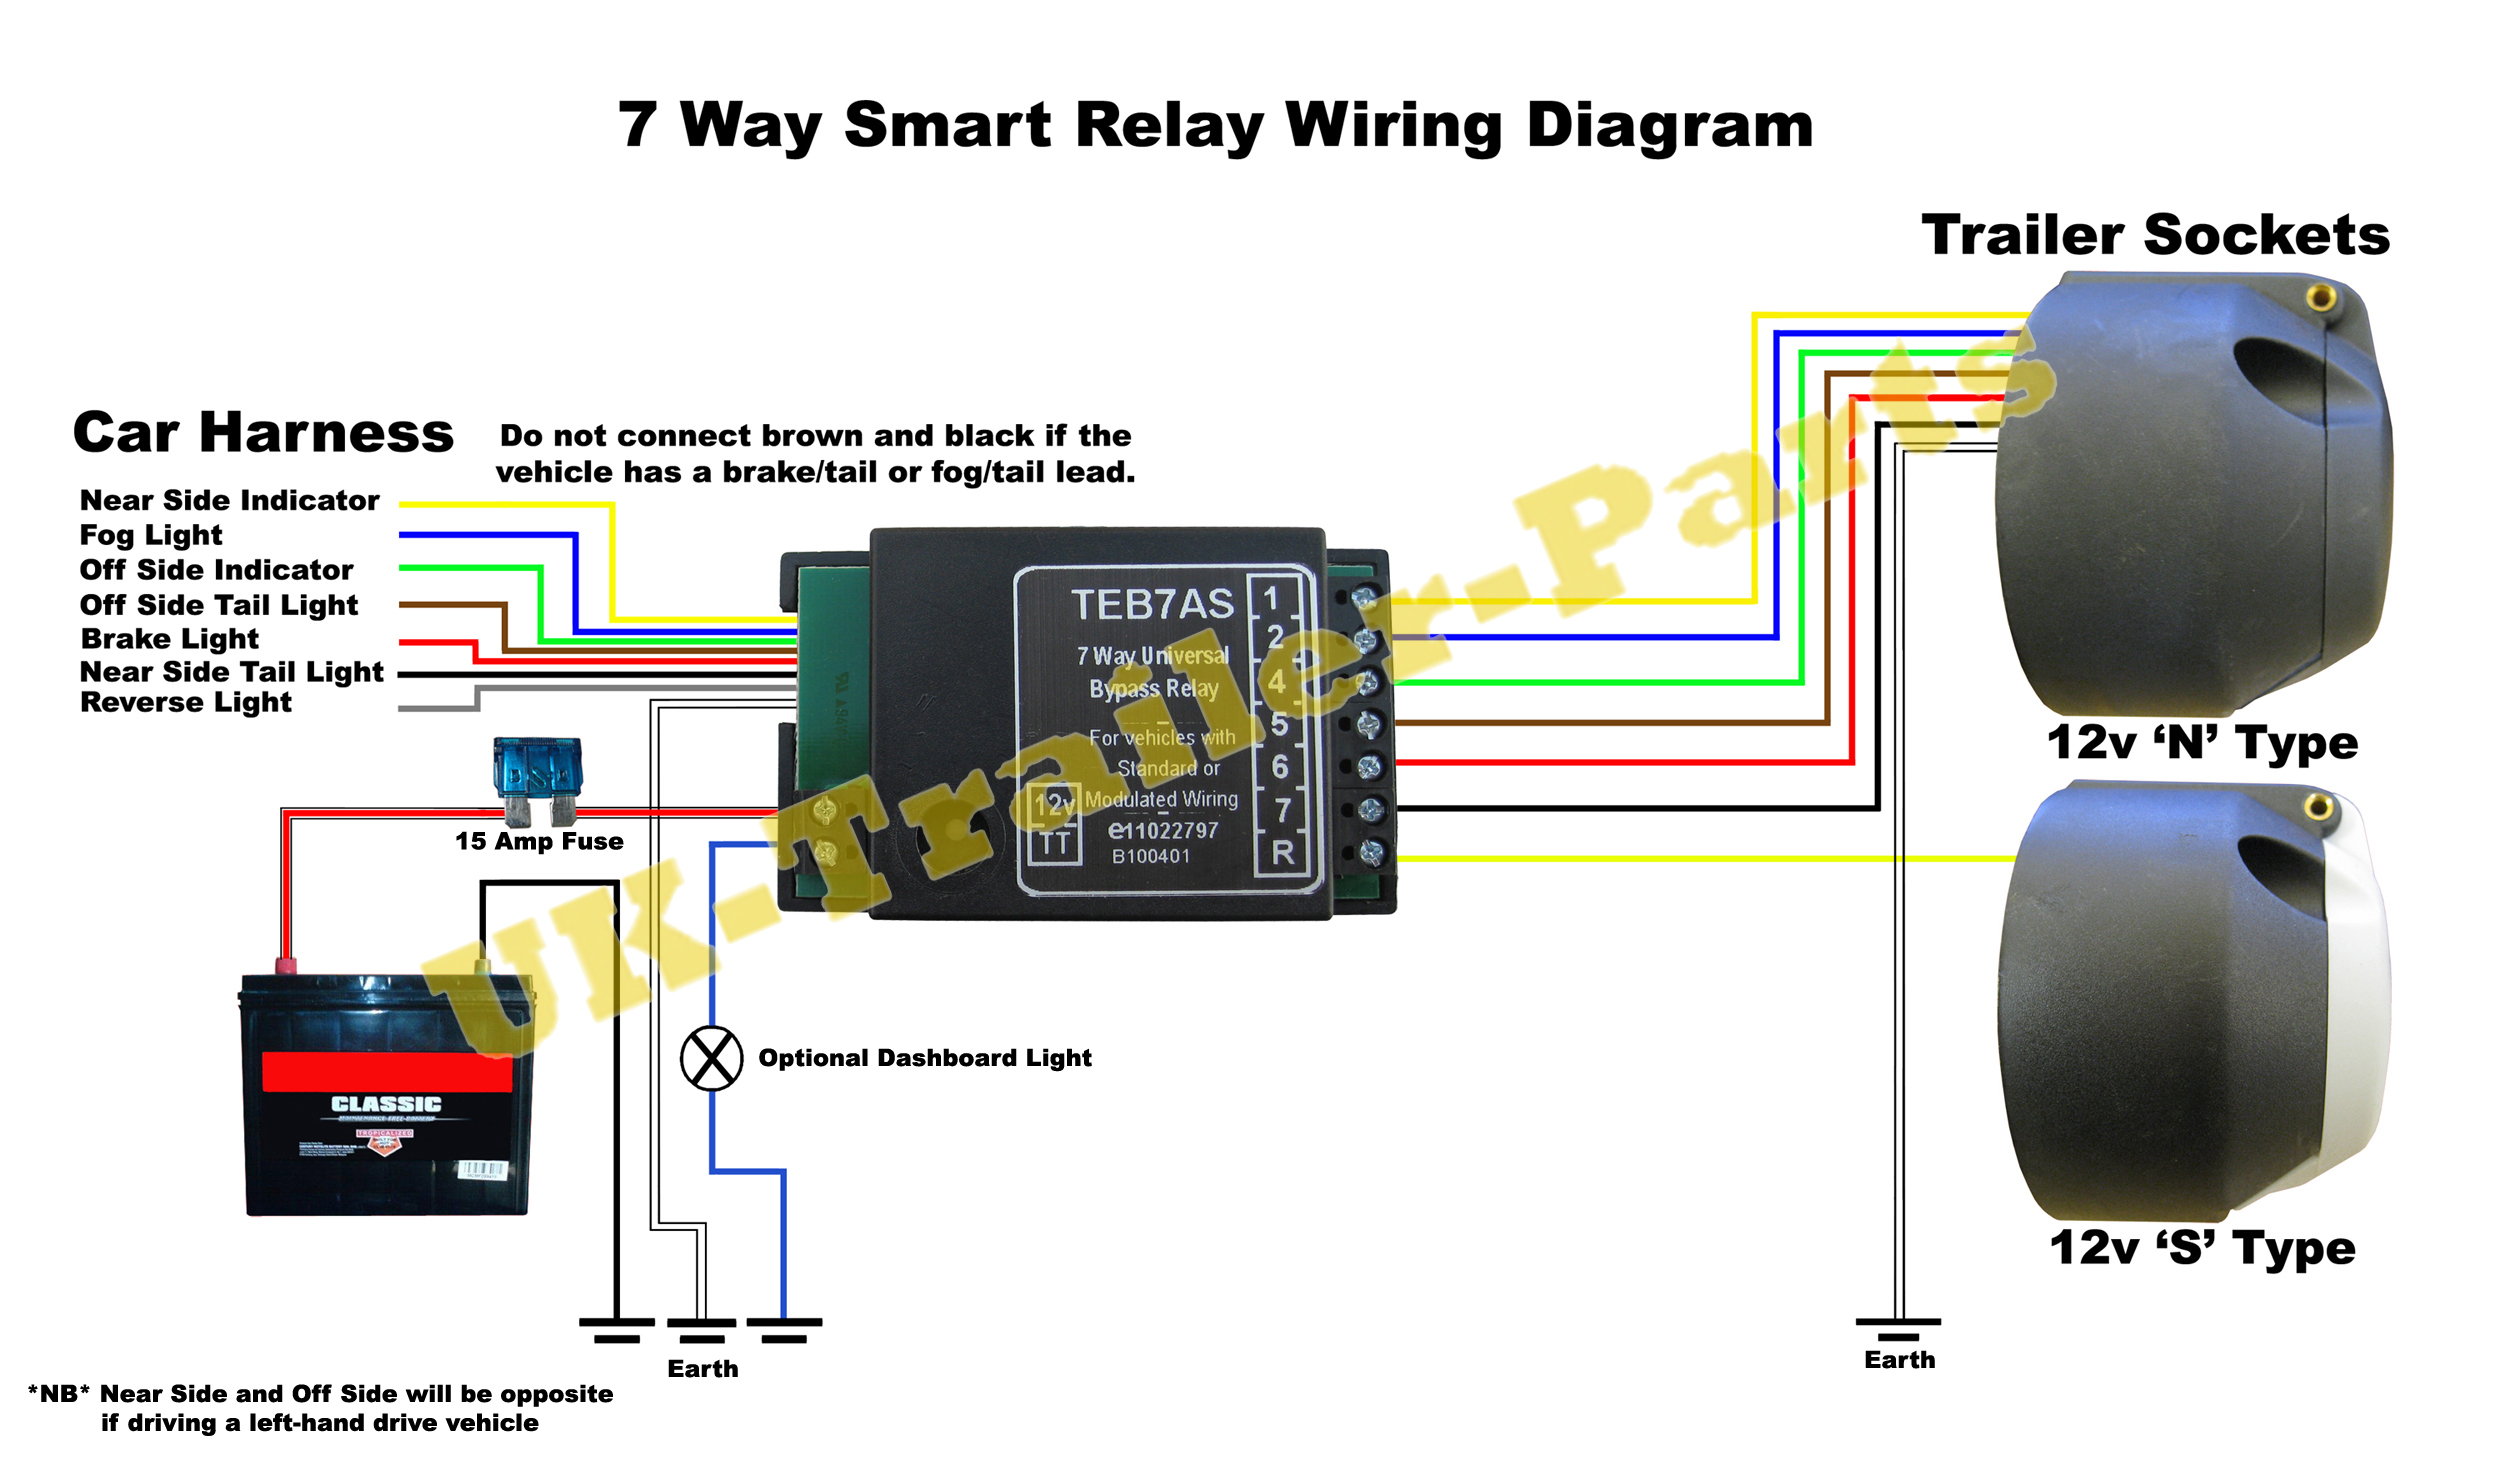 relay wiring diagram IkuKRrj nissan x trail tow bar wiring diagram wiring diagram simonand nissan x trail tow bar wiring diagram at creativeand.co